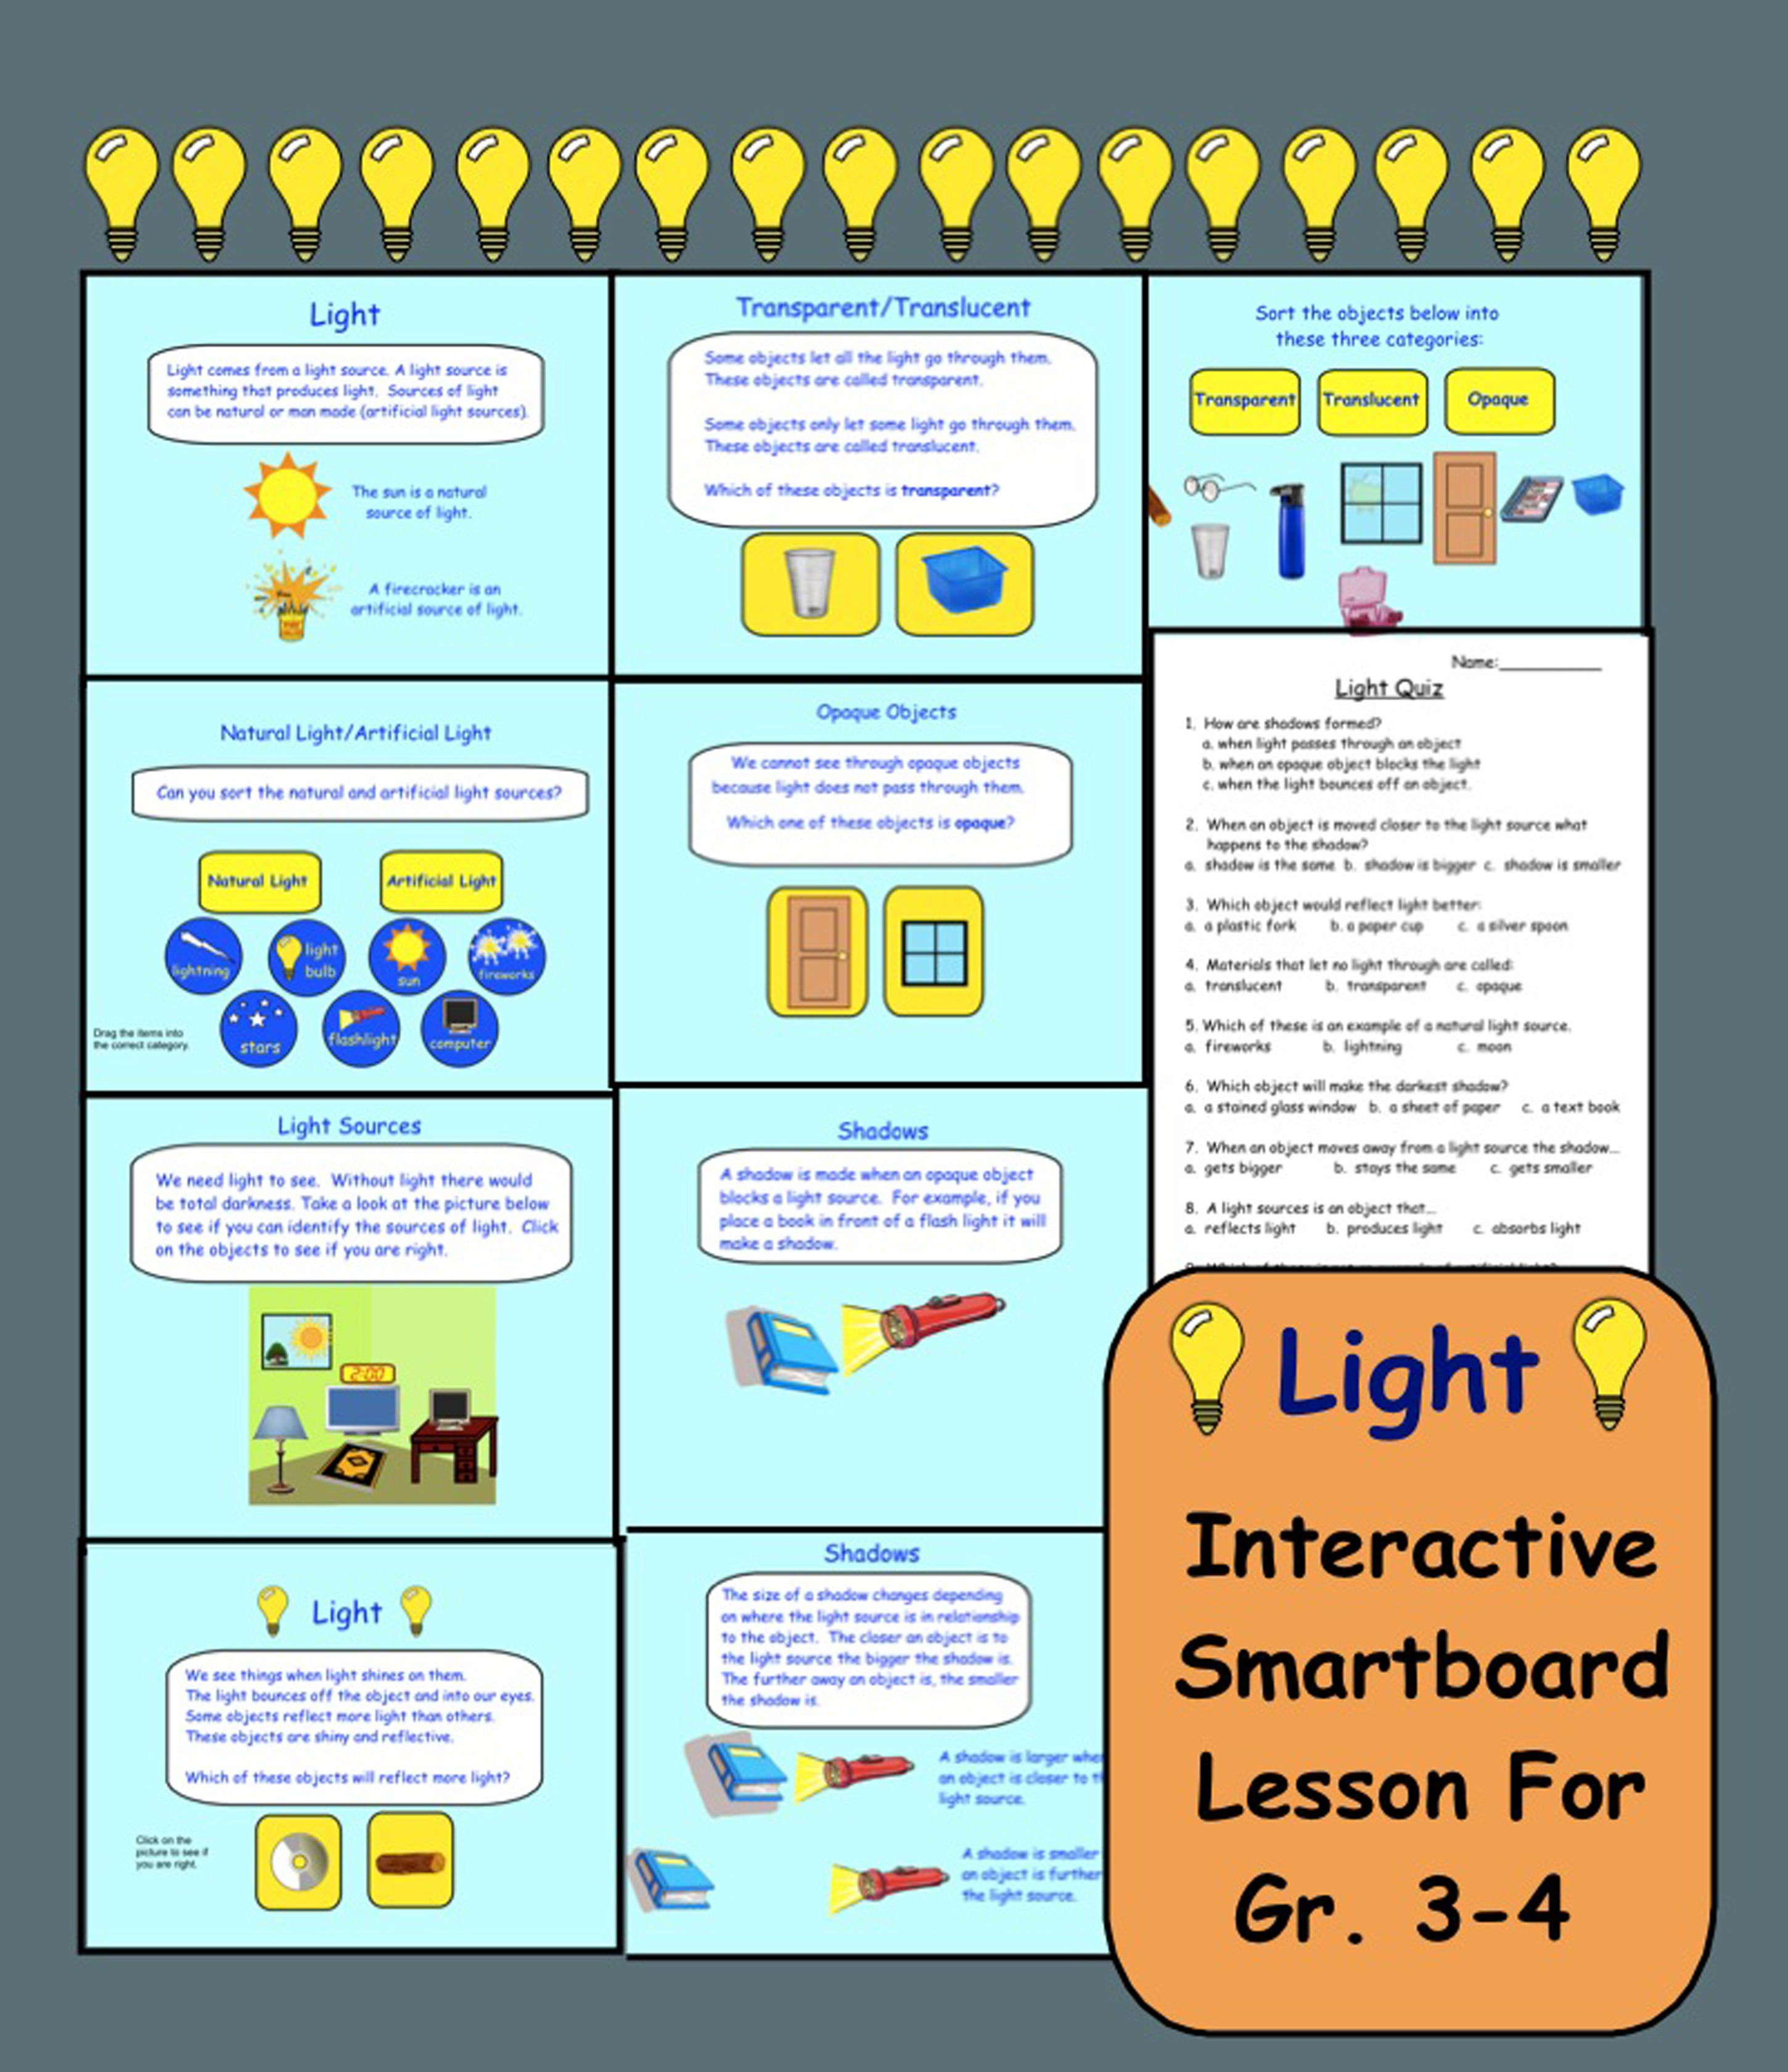 Light Interactive Smartboard Activities For Gr 3